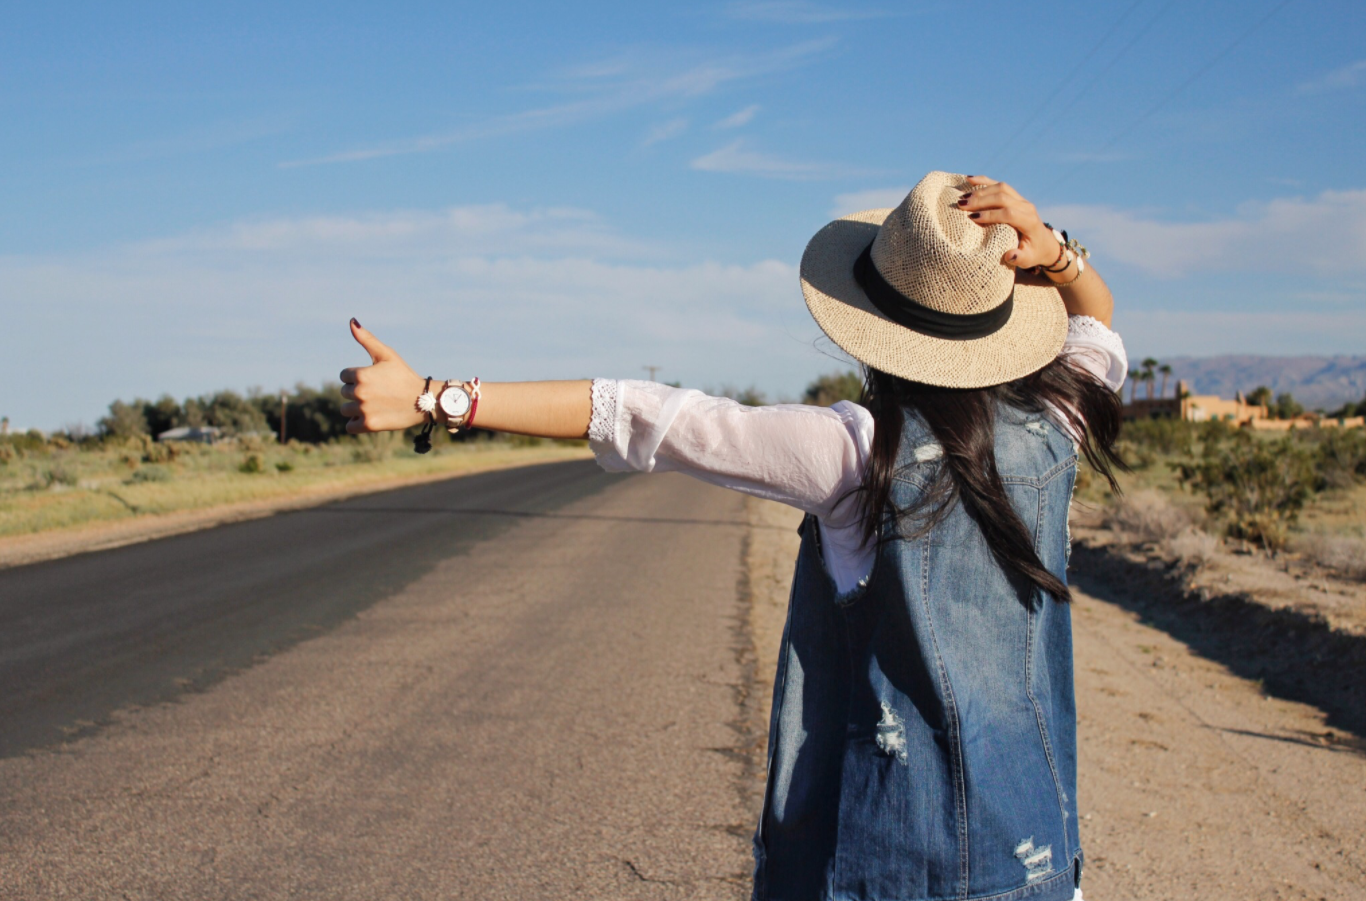 hitchhiking_california fashion blogger_california pharmacy student_adrienne Nguyen_invictus_ootd_boho_roadtrip_fashionista